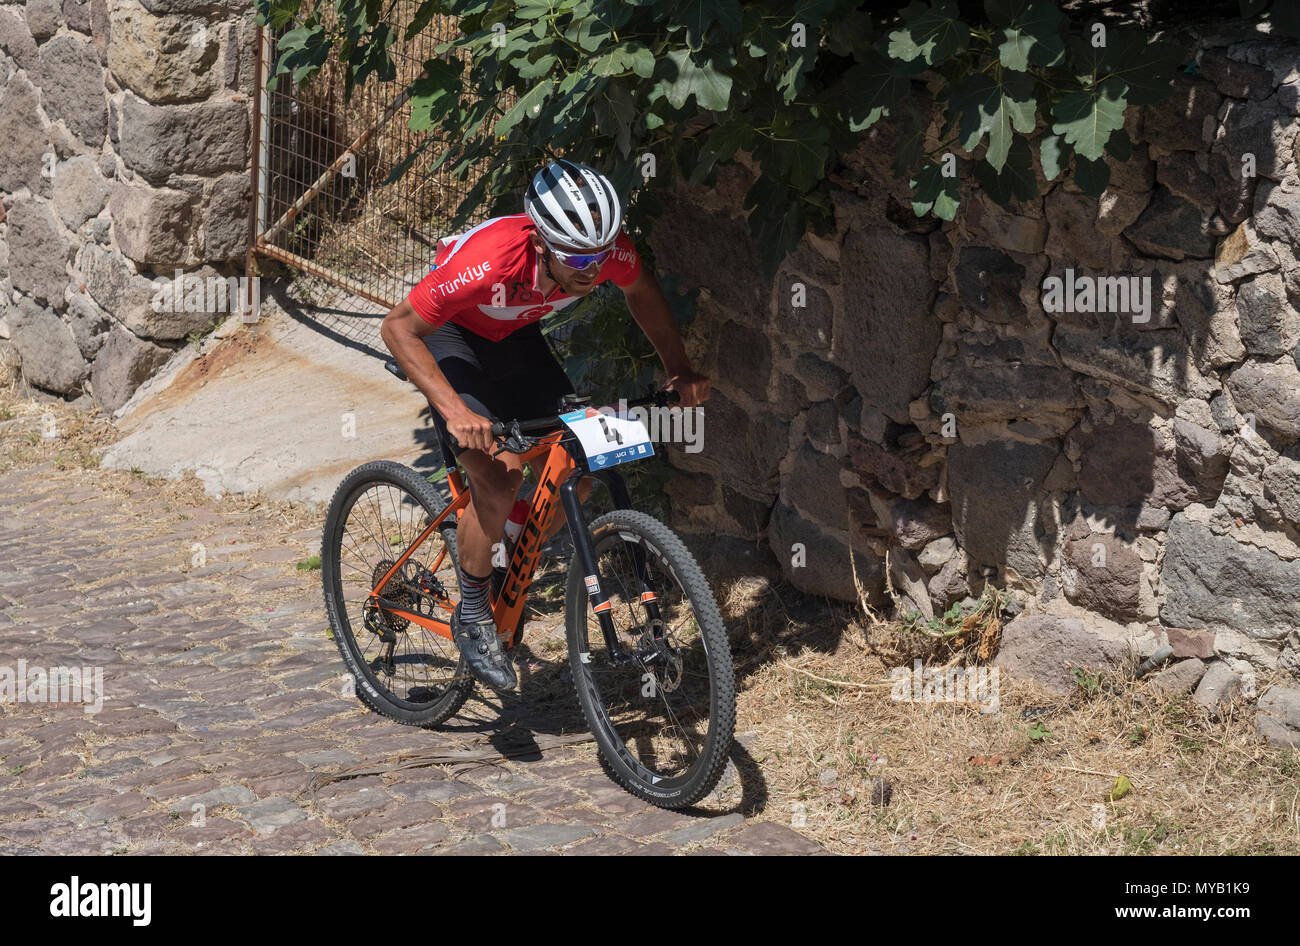 Turkish male cyclist competes in an international mountain bike race in the urban course outside the Greek village of Molyvos on the island of Lesvos - Stock Image